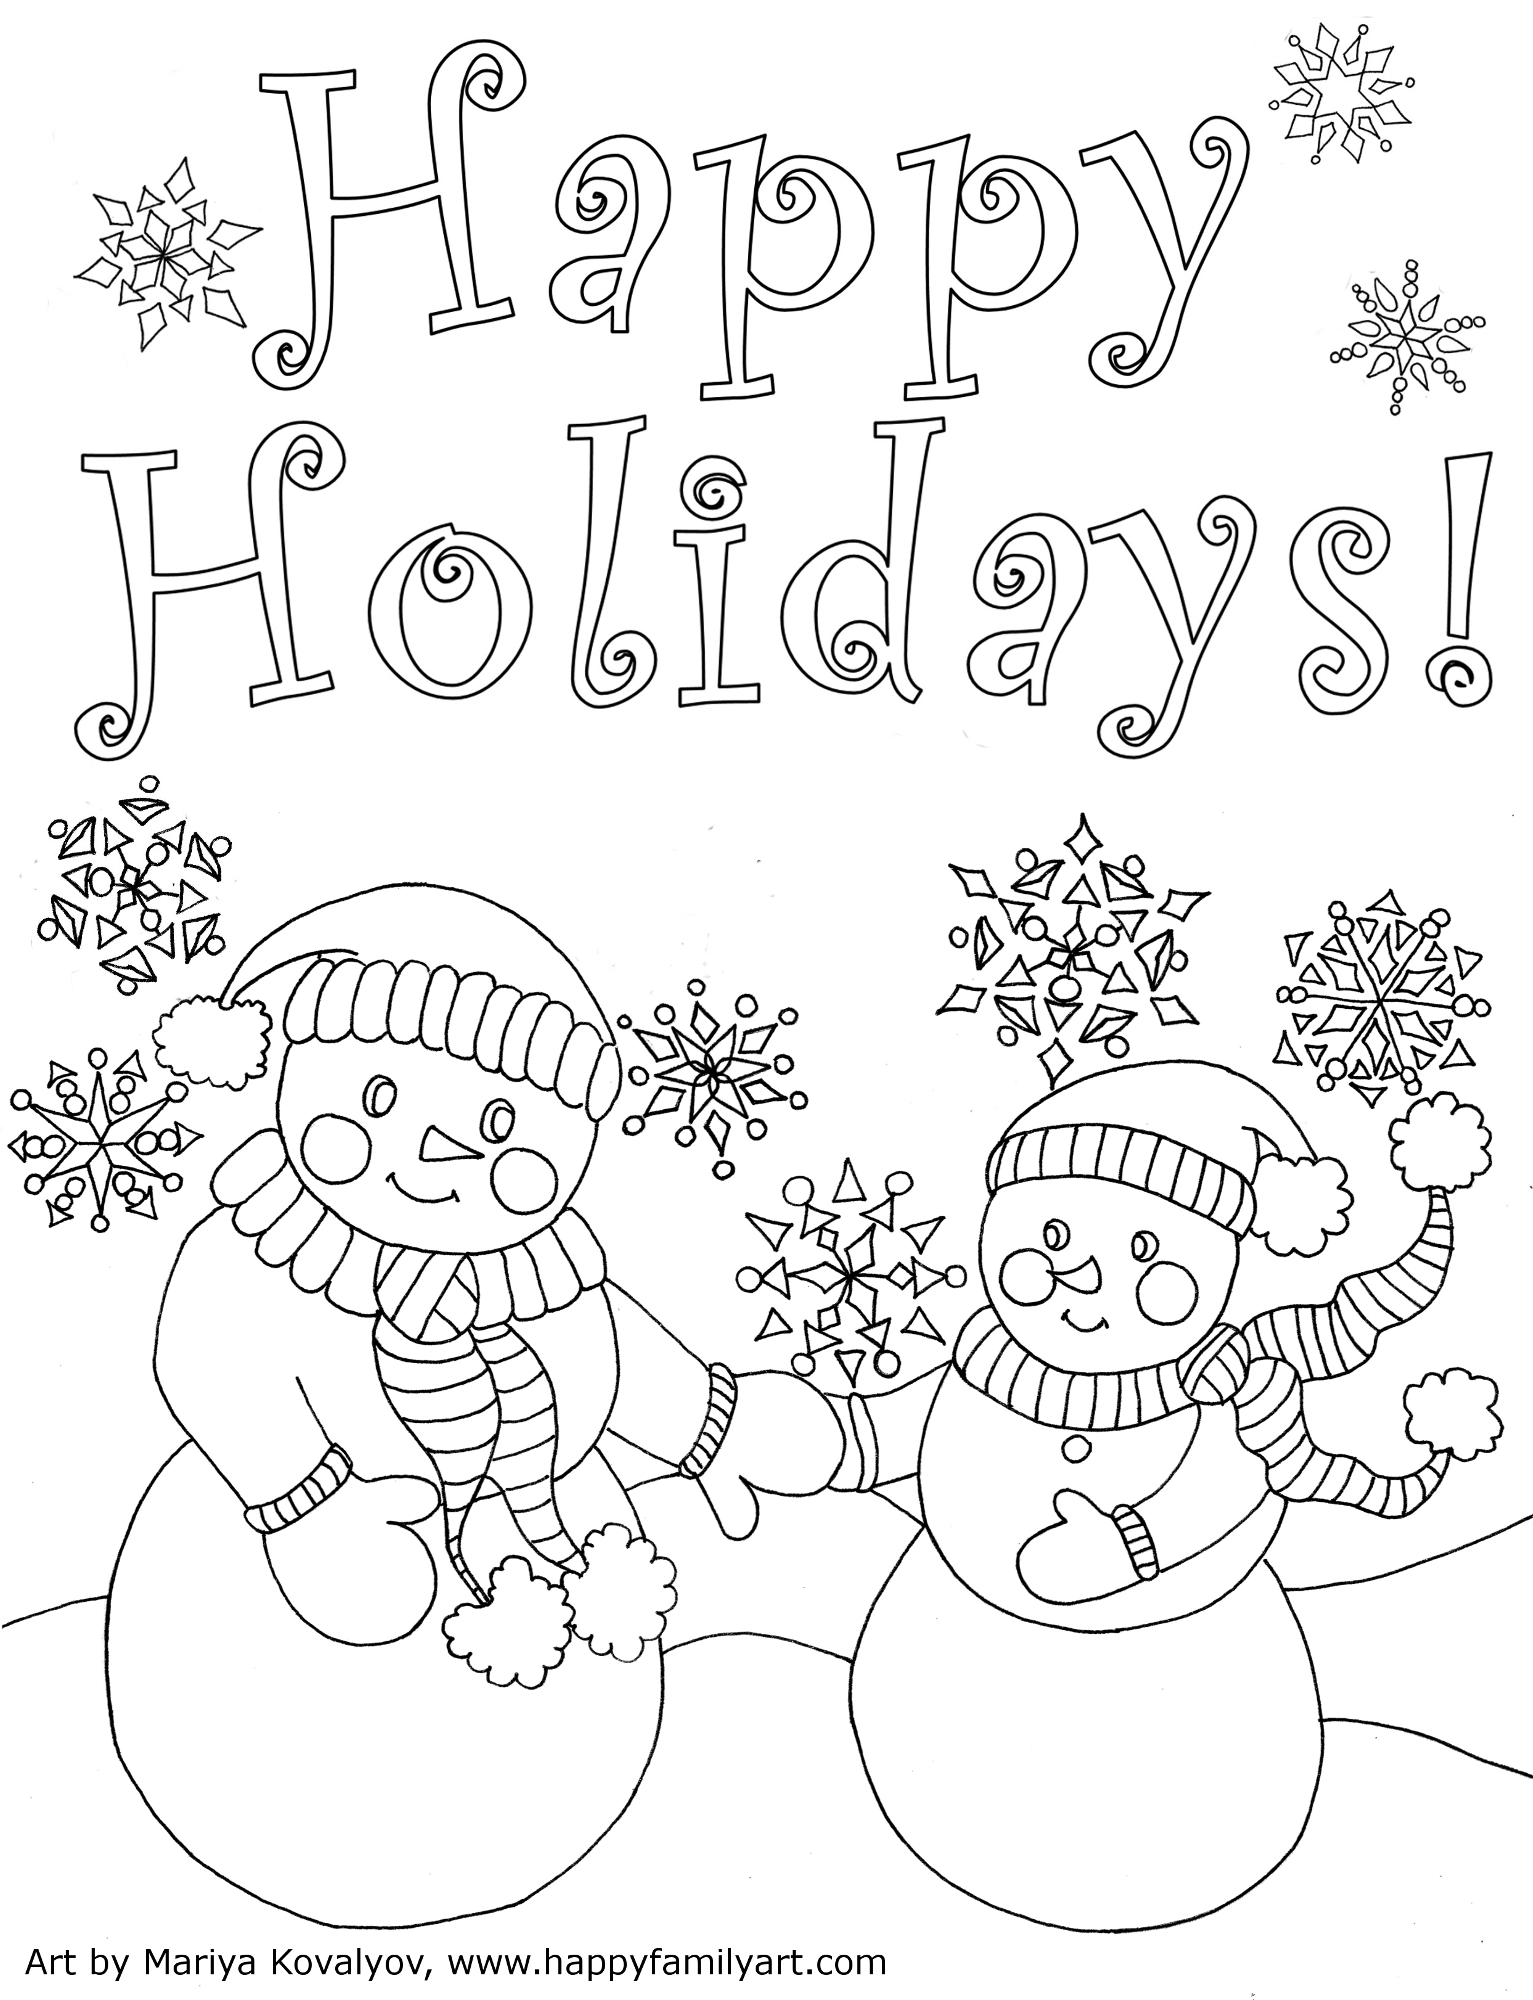 Happy family art original and fun coloring pages for Seasonal coloring pages